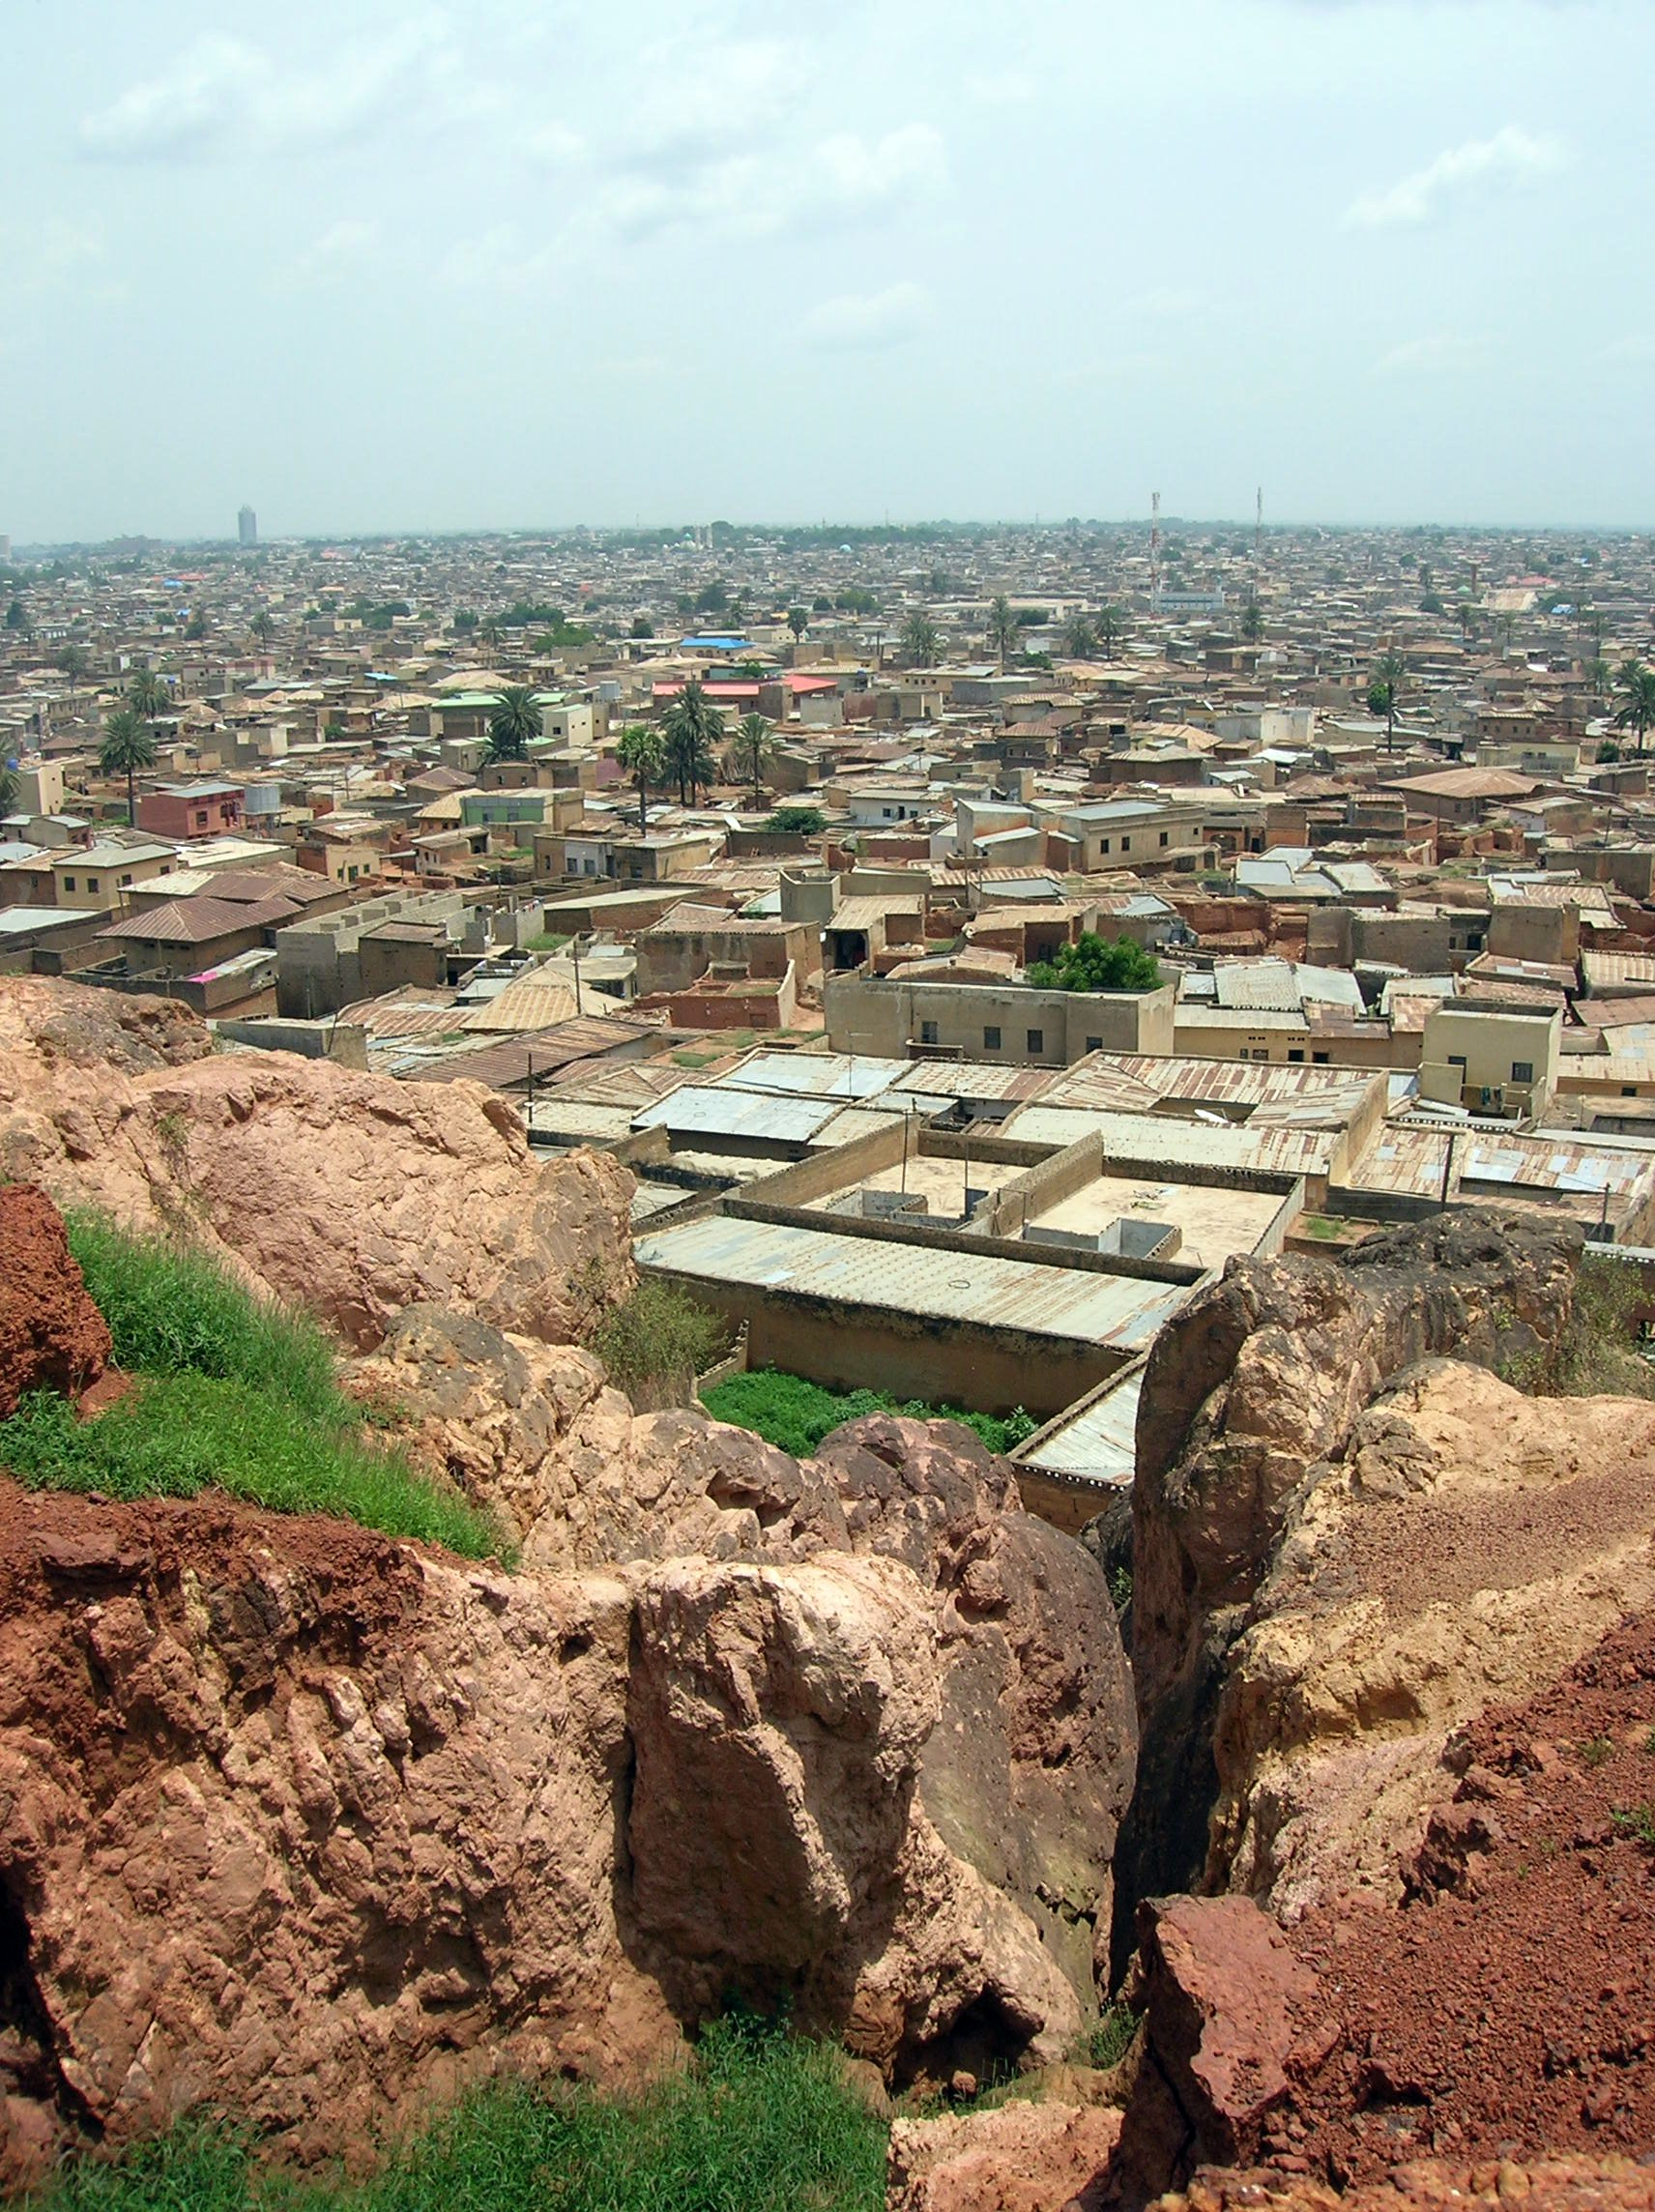 Kano from Dala Hill - Image by Shiraz Chakera